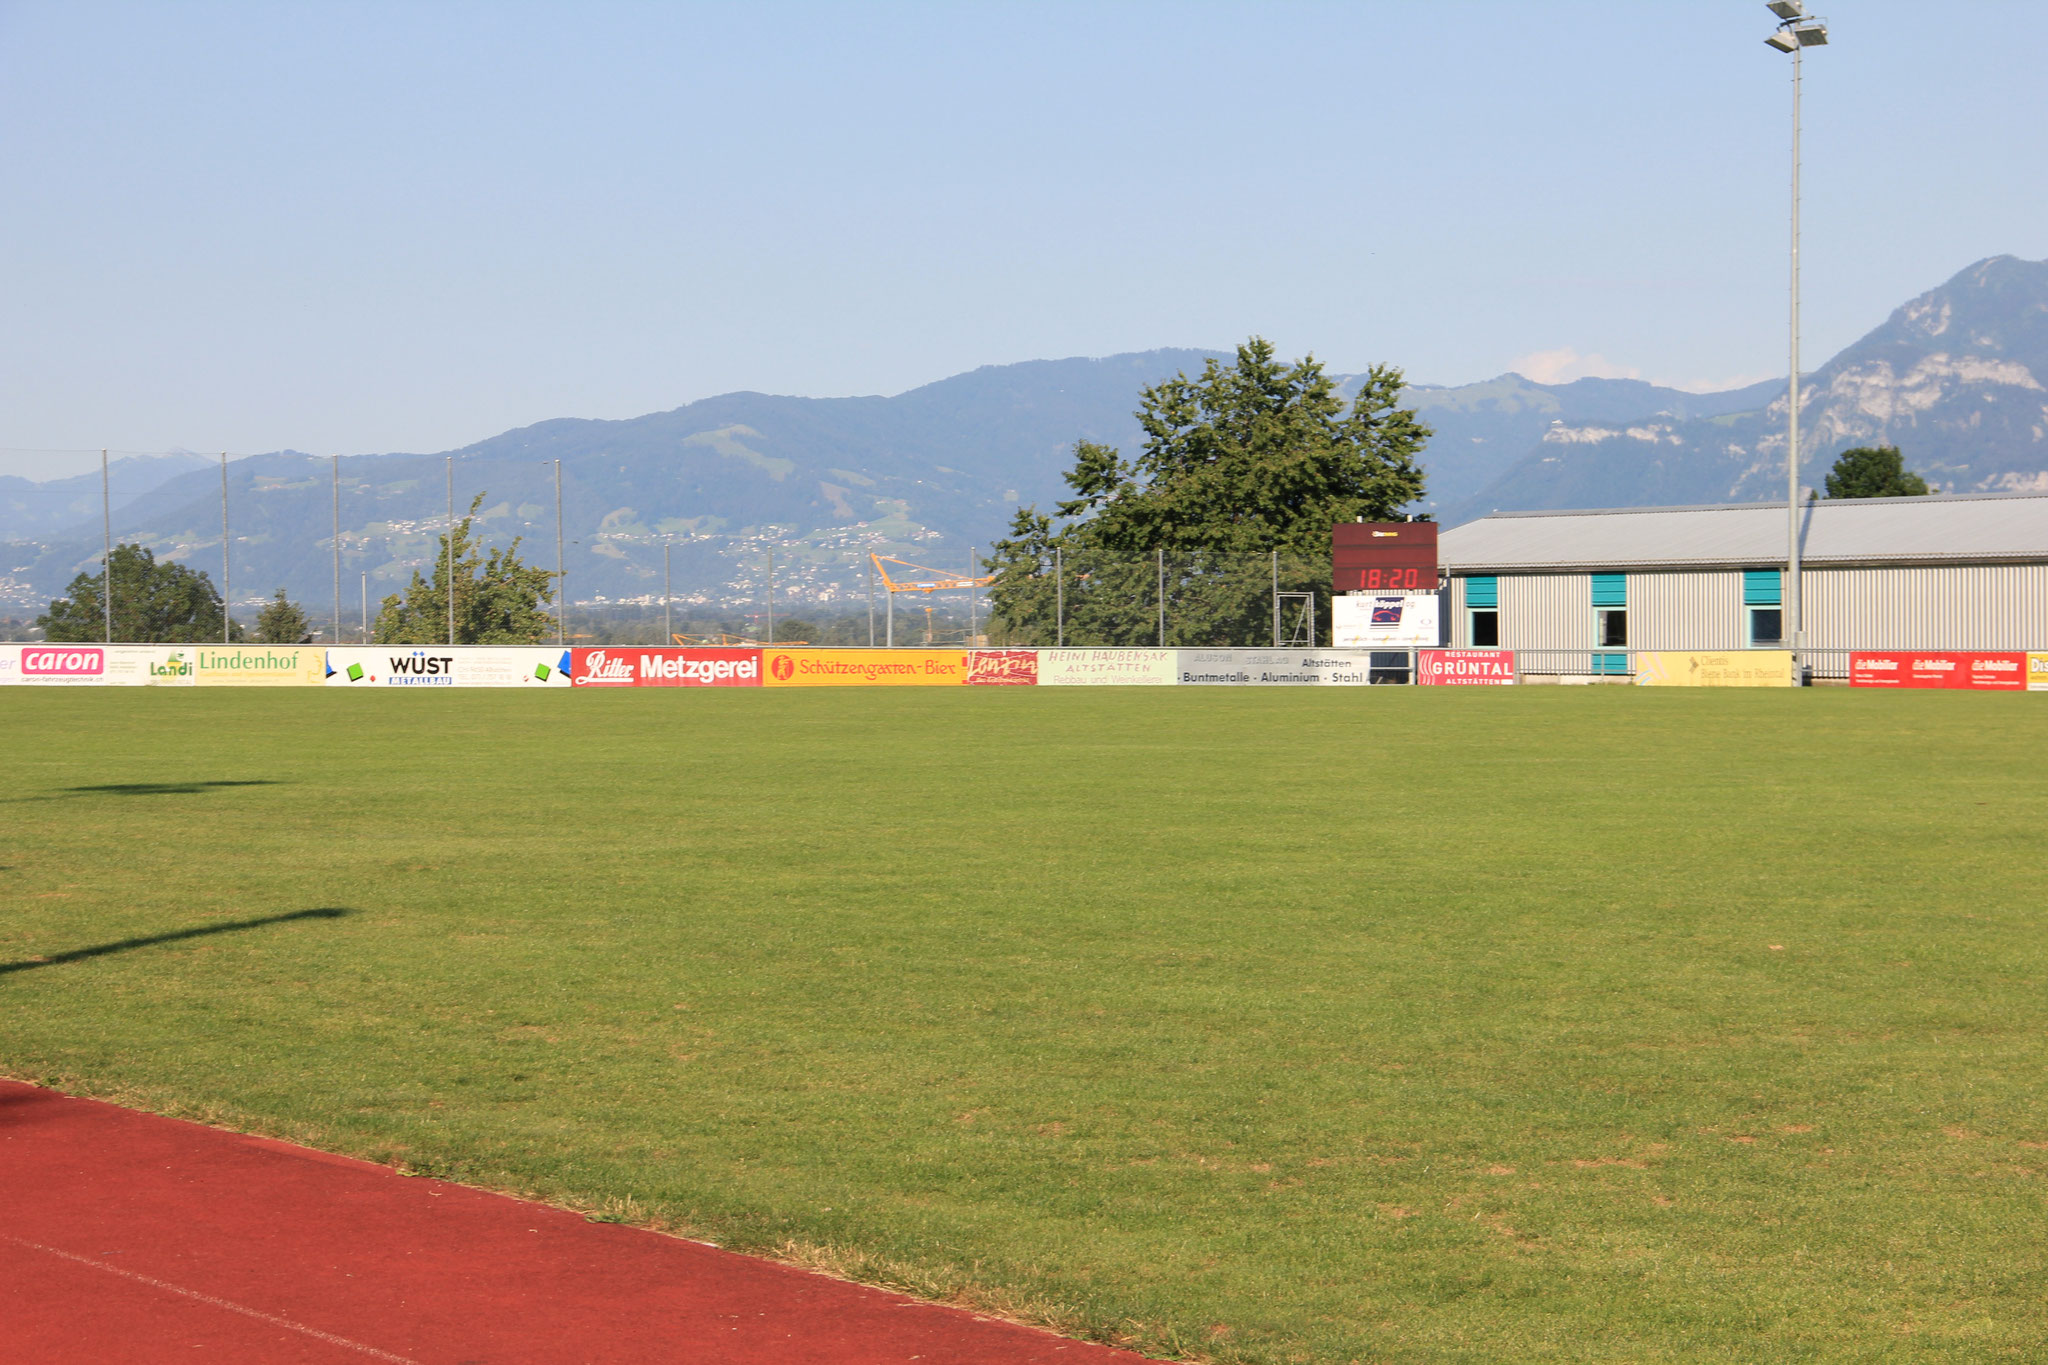 Training/Matchplatz